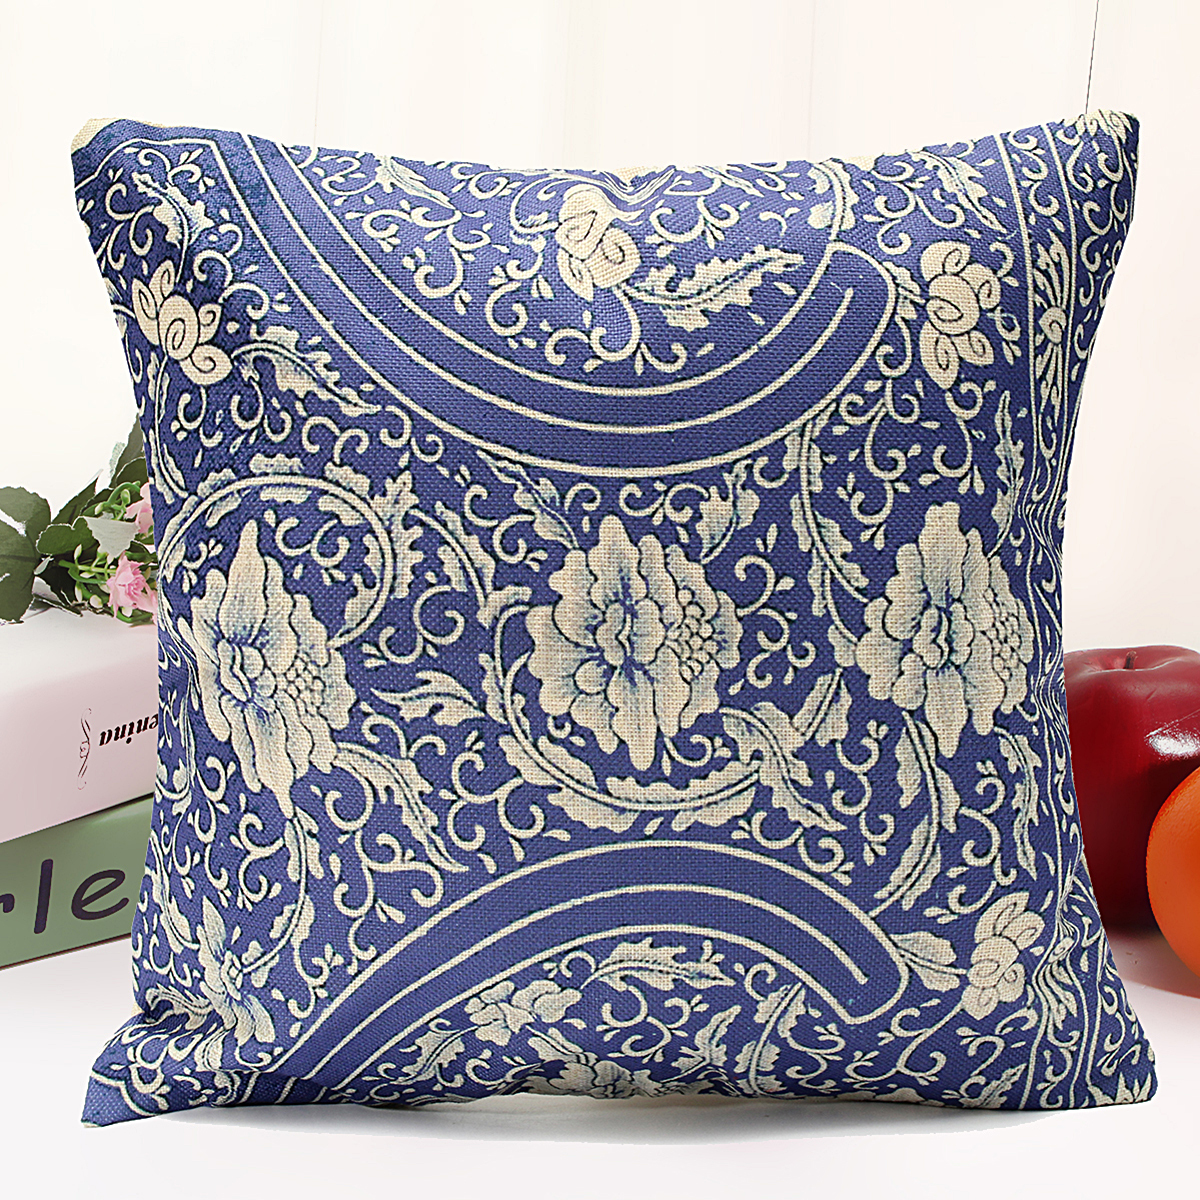 Tropical Throw Pillow Covers : Floral Tropical Plant Leaf Cushion Covers Throw Pillow Case Home Decor AU SELLER eBay